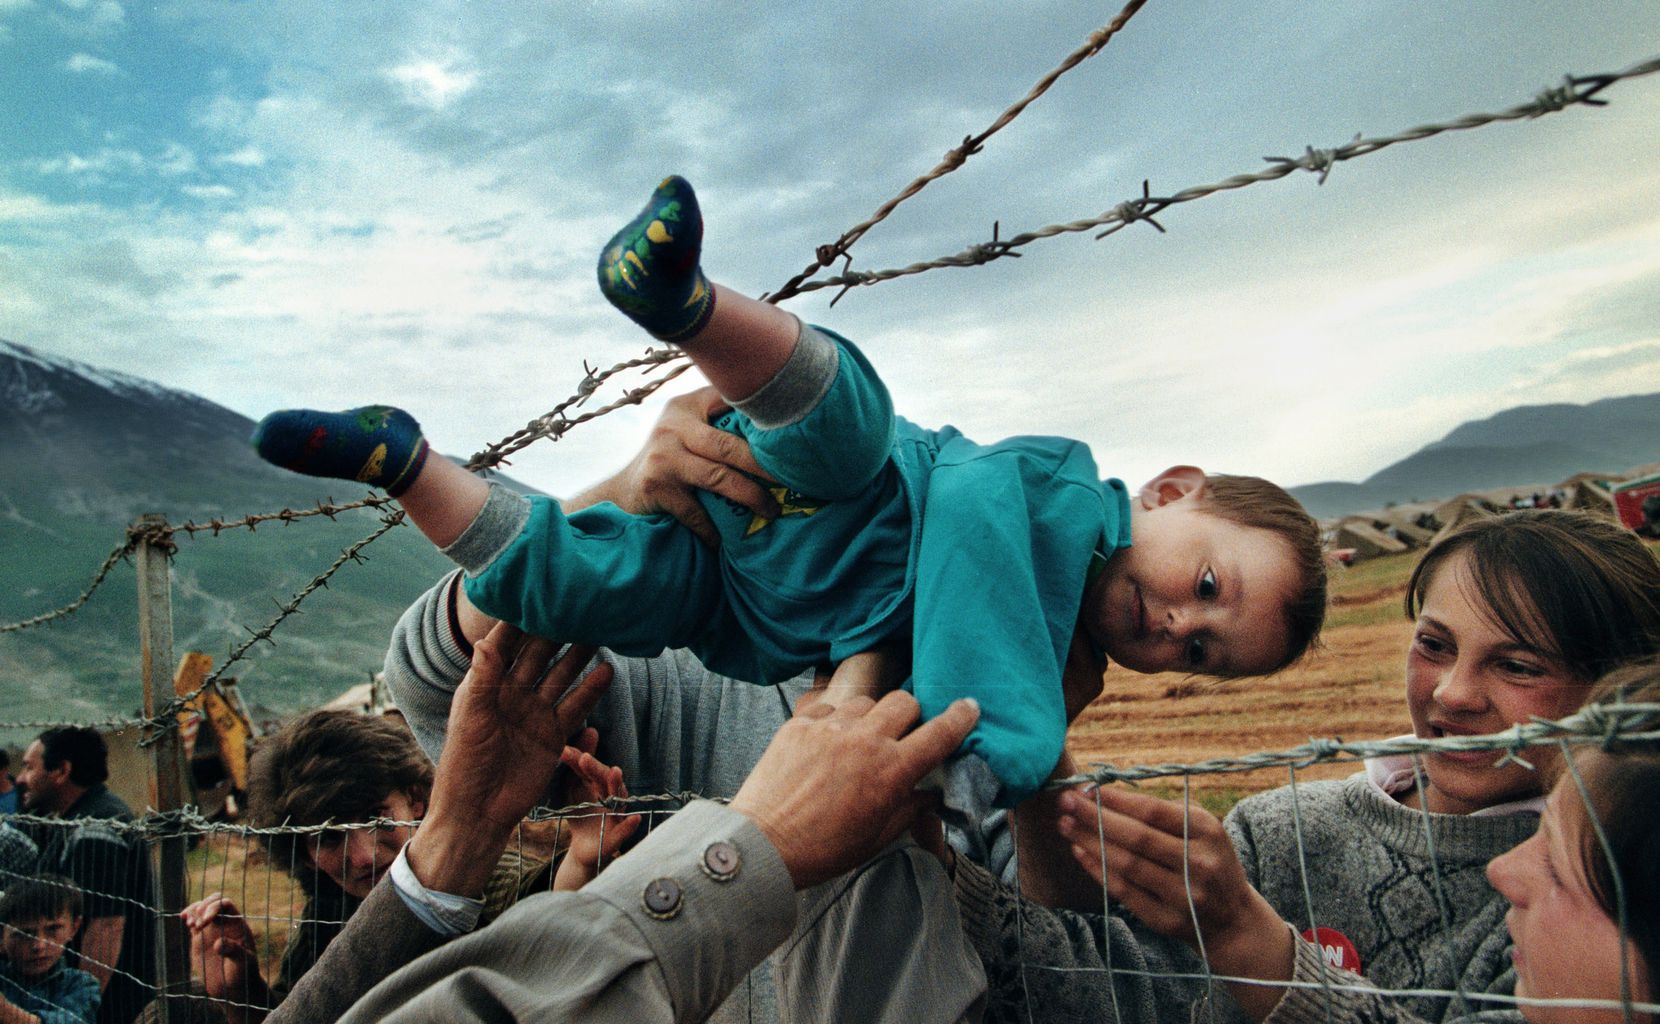 In this photo, part of Carol Guzy's Pulitzer Prize-winning portfolio, Kosovar refugee Agim Shala, 2 years old, is passed through the barbed wire fence into the hands of grandparents at the camp run by United Arab Emirates in Kukes, Albania. The members of the large Shala family were reunited here after fleeing Prizren in Kosovo during the conflict. . (The grandparents had just crossed the border at Morina). The relatives who just arrived had to stay outside the camp until shelter was available. The next day members of the family had tents inside. The fence was the scene of many reunions. When the peace agreement was signed, they returned to Prizren to find their homes only mildly damaged. There were tears of joy and sadness from the family as the children were passed through the fence, symbolic of the innocence and horror of the conflict.